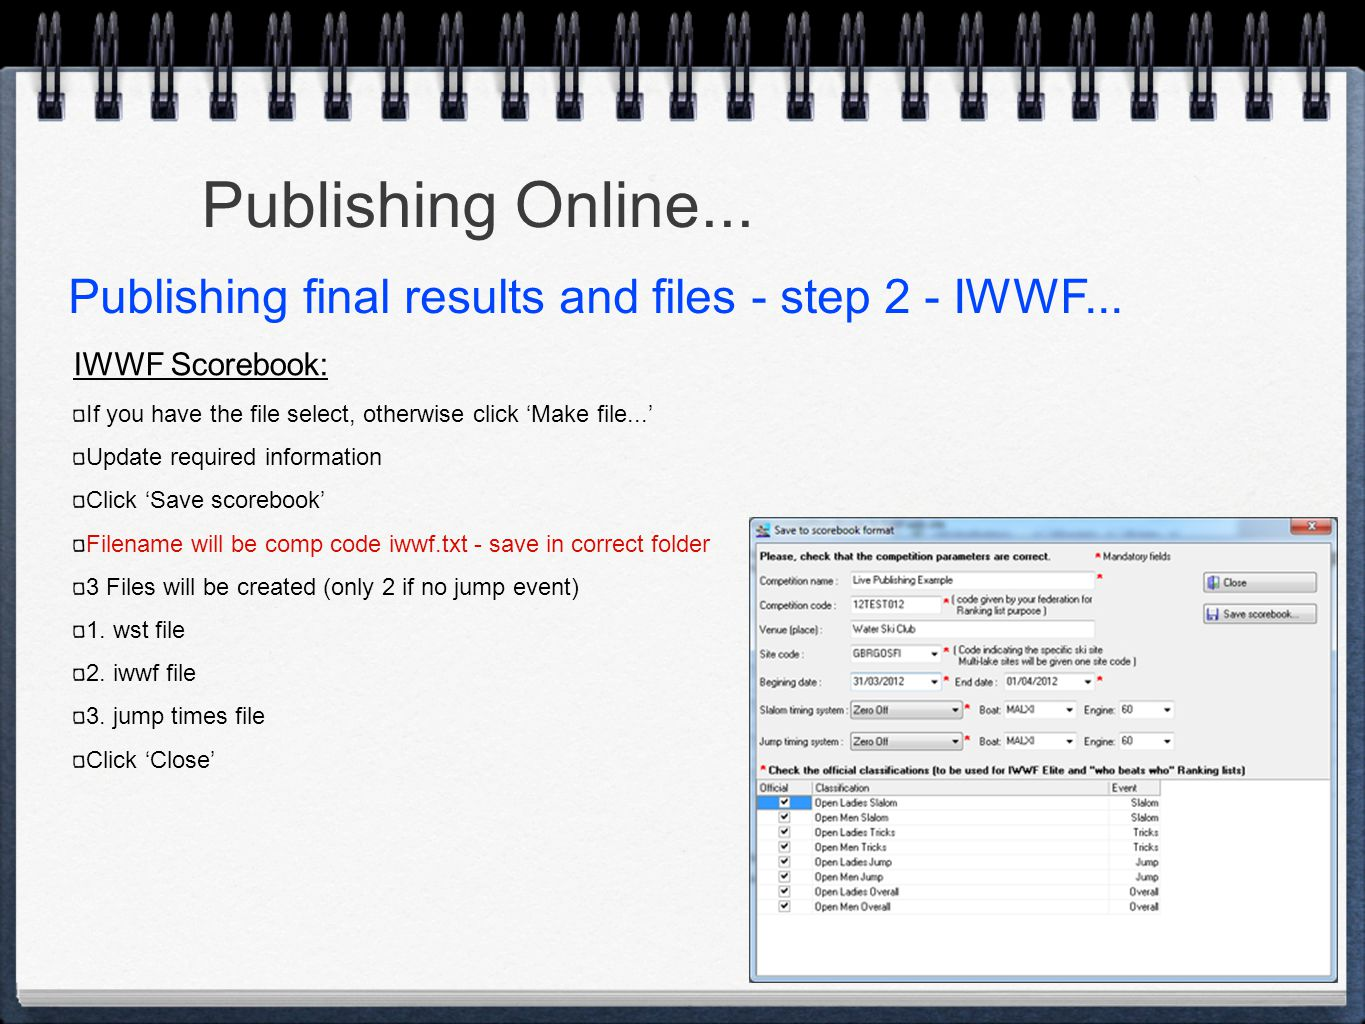 Publishing Online... IWWF Scorebook: If you have the file select, otherwise click 'Make file...' Update required information Click 'Save scorebook' Fi